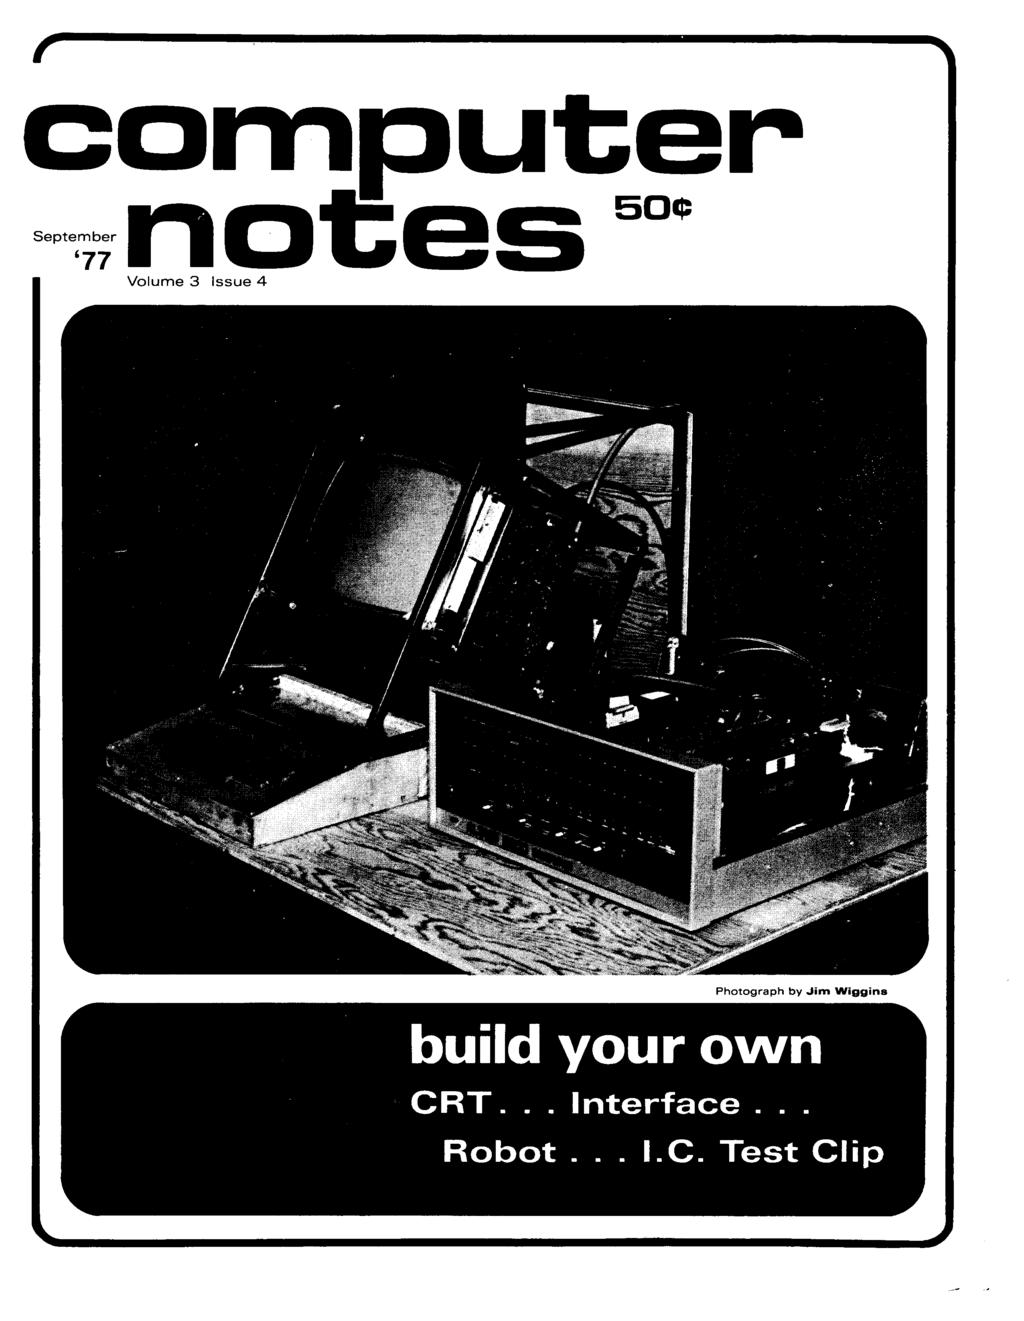 Computer Build Your Own Sepebn Aces 50 Crt Interface Building Door Control Circuit Free Electronic Circuits 8085 Volume 3 Issue